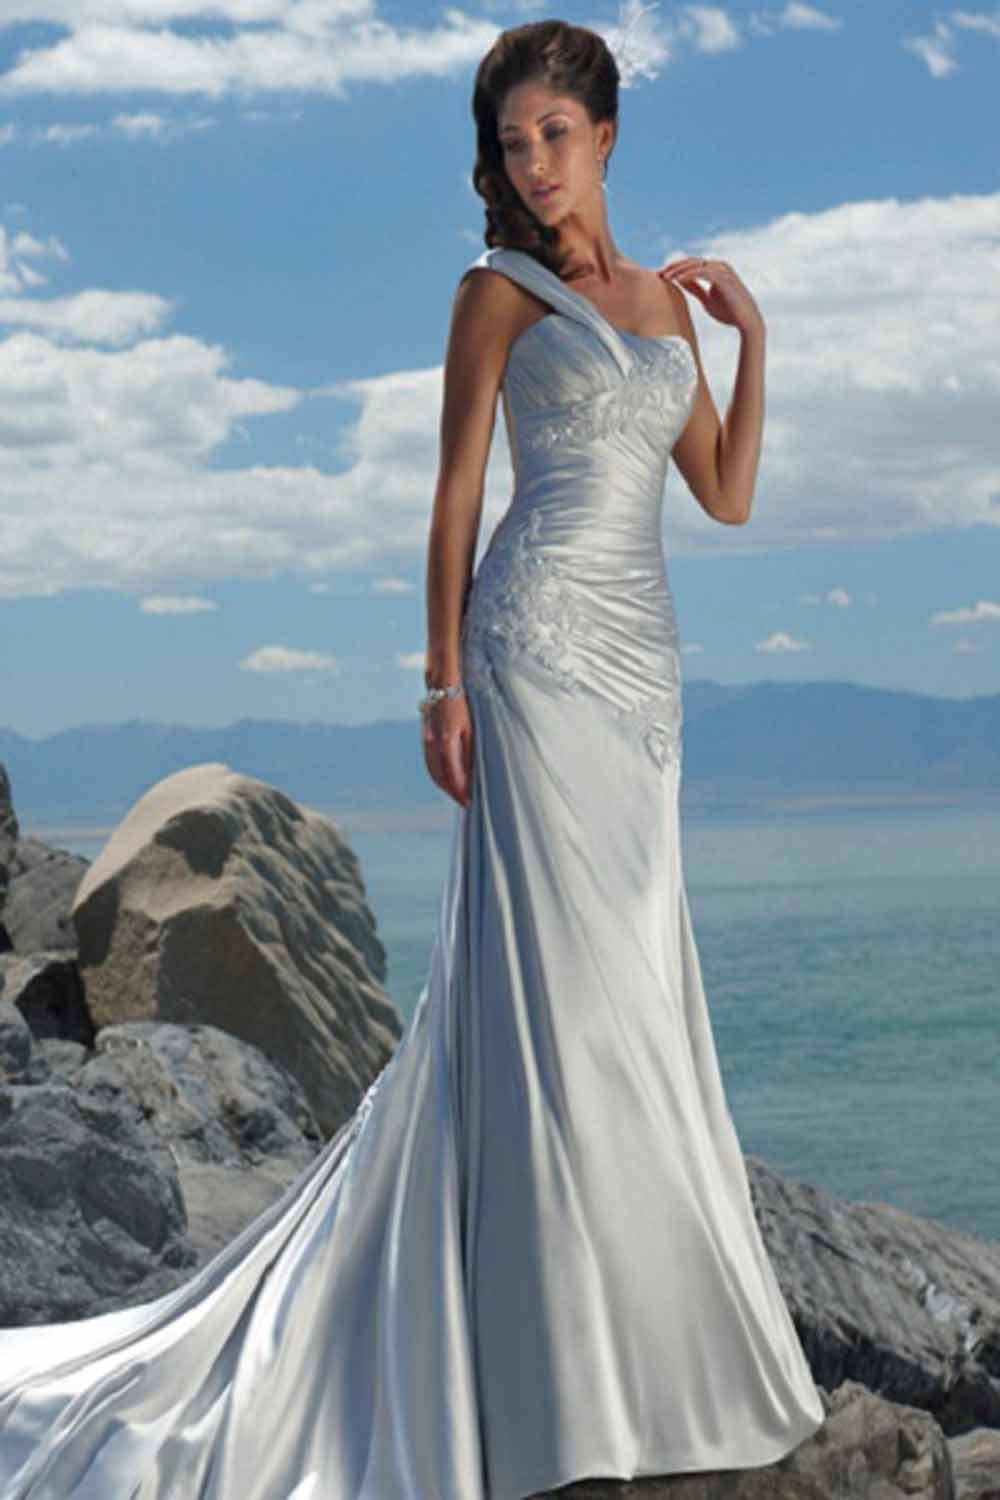 Be Awesome With the Beach Wedding Dress | Fashion Grapher | wedding ...